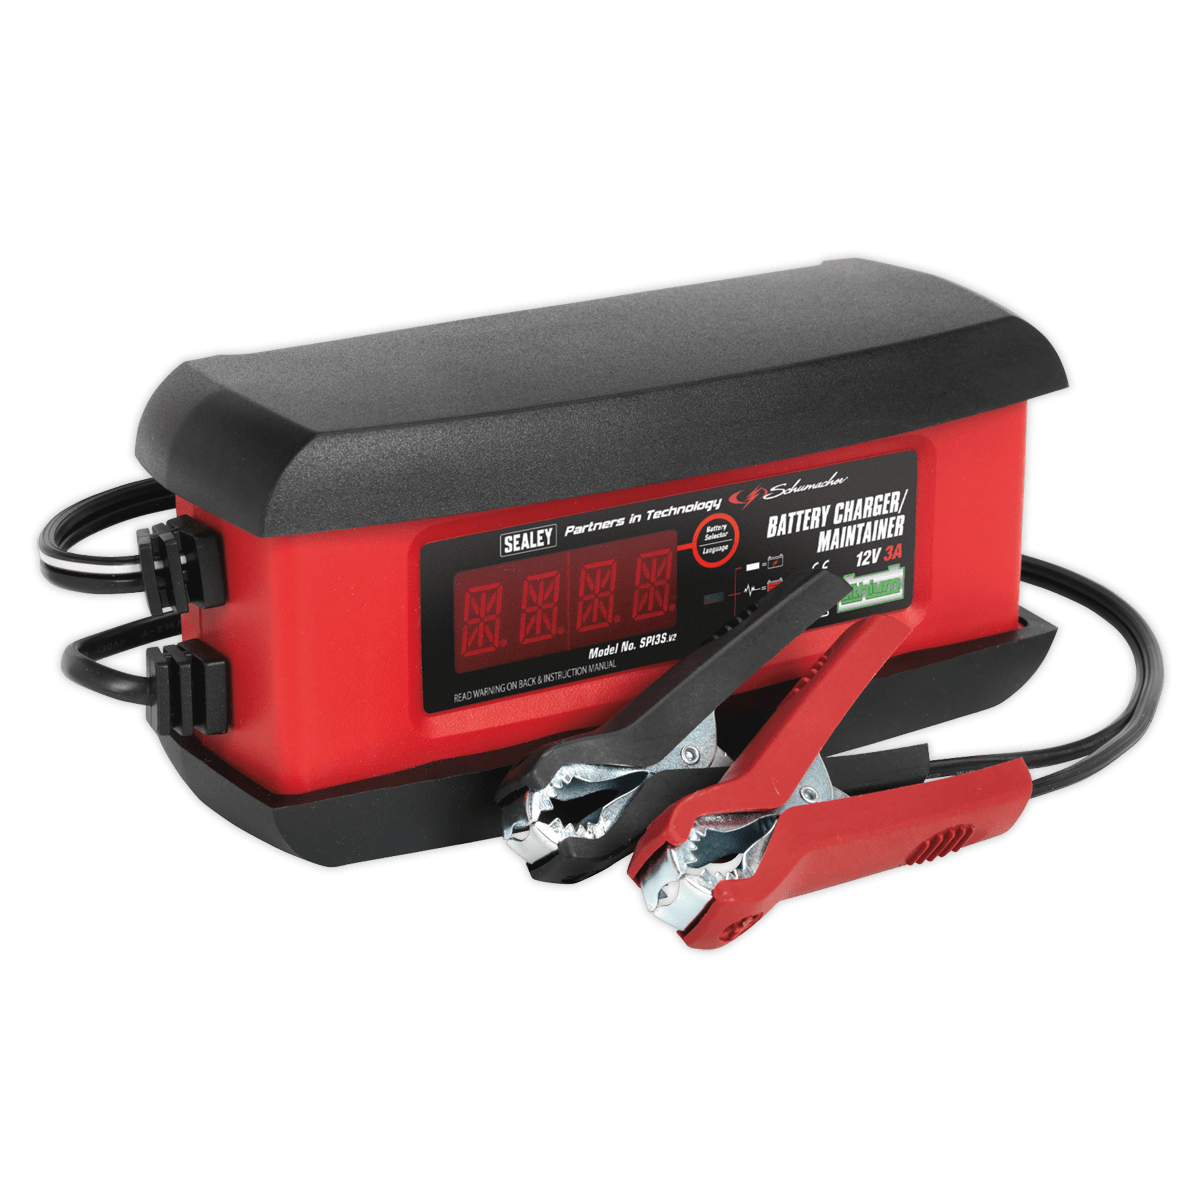 Sealey Schumacher® Intelligent Lithium Battery Charger 3Amp 12V SPI3S | Fully automatic microprocessor controlled battery charger and maintainer, featuring patented Speed Charge technology. | toolforce.ie